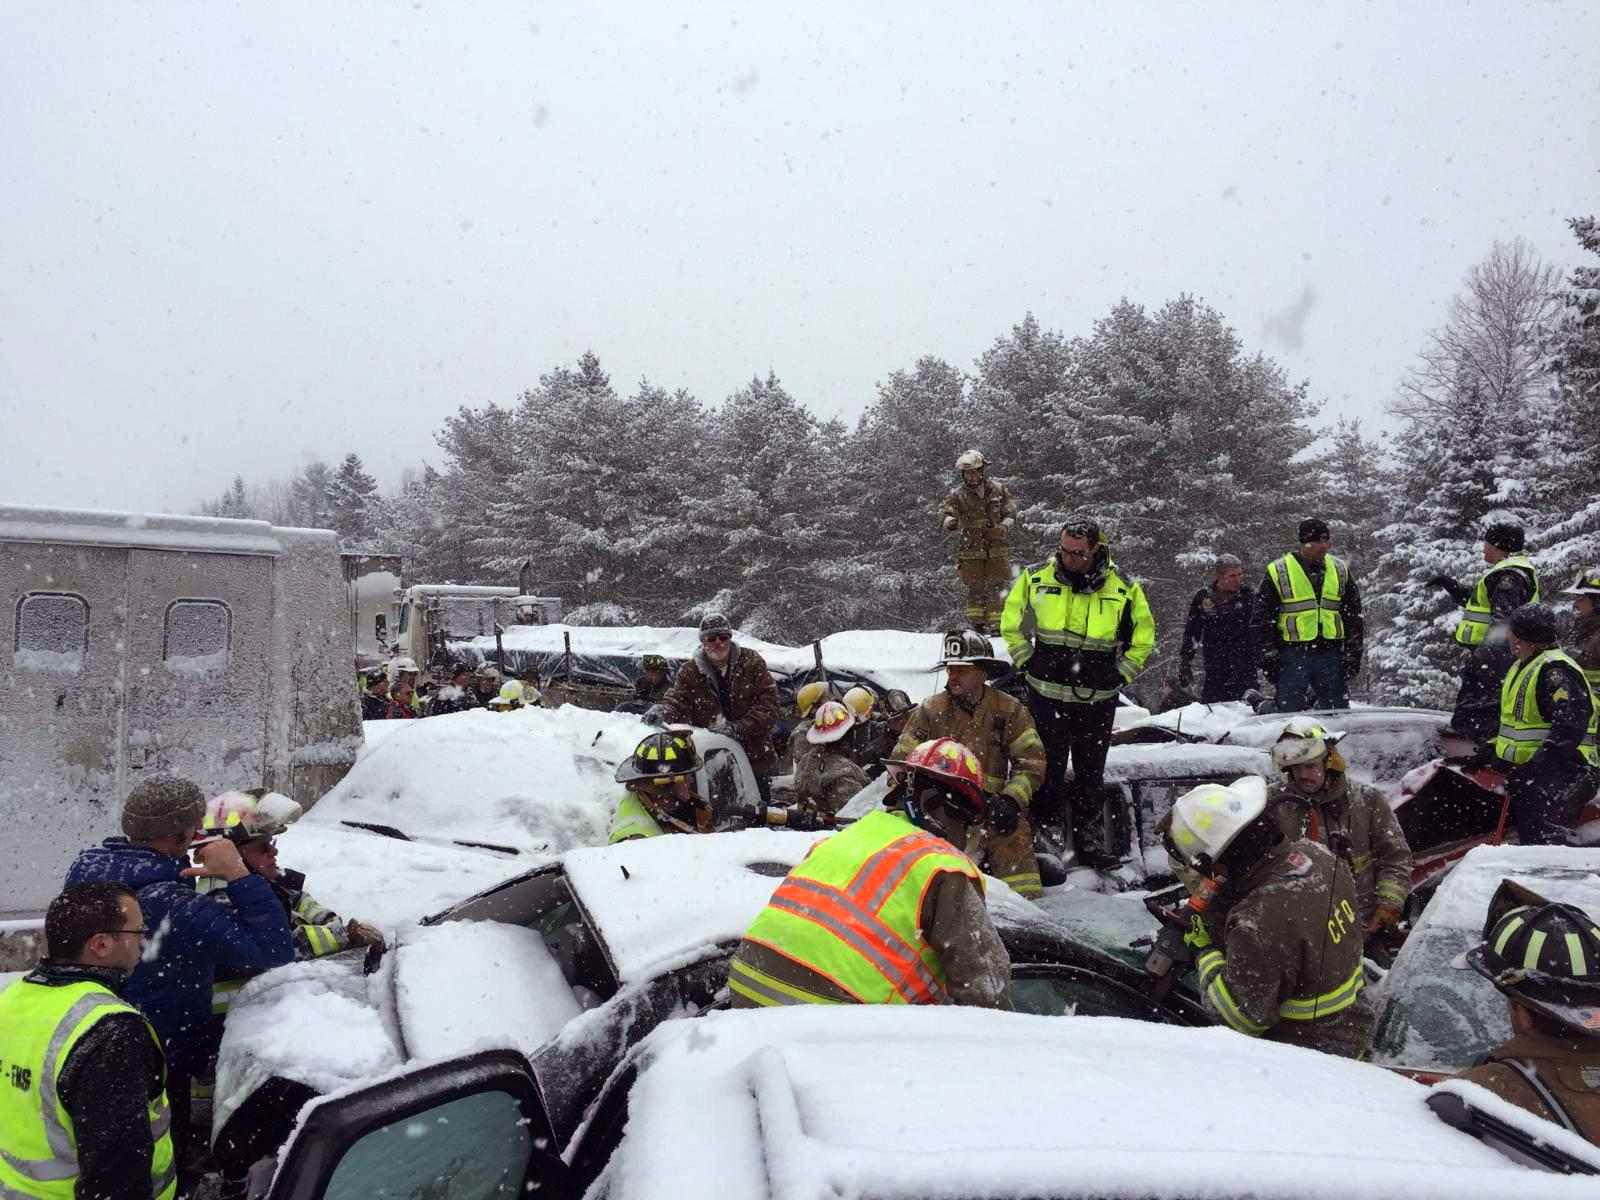 Maine weighs revoking seat belt law days after 75-car pileup